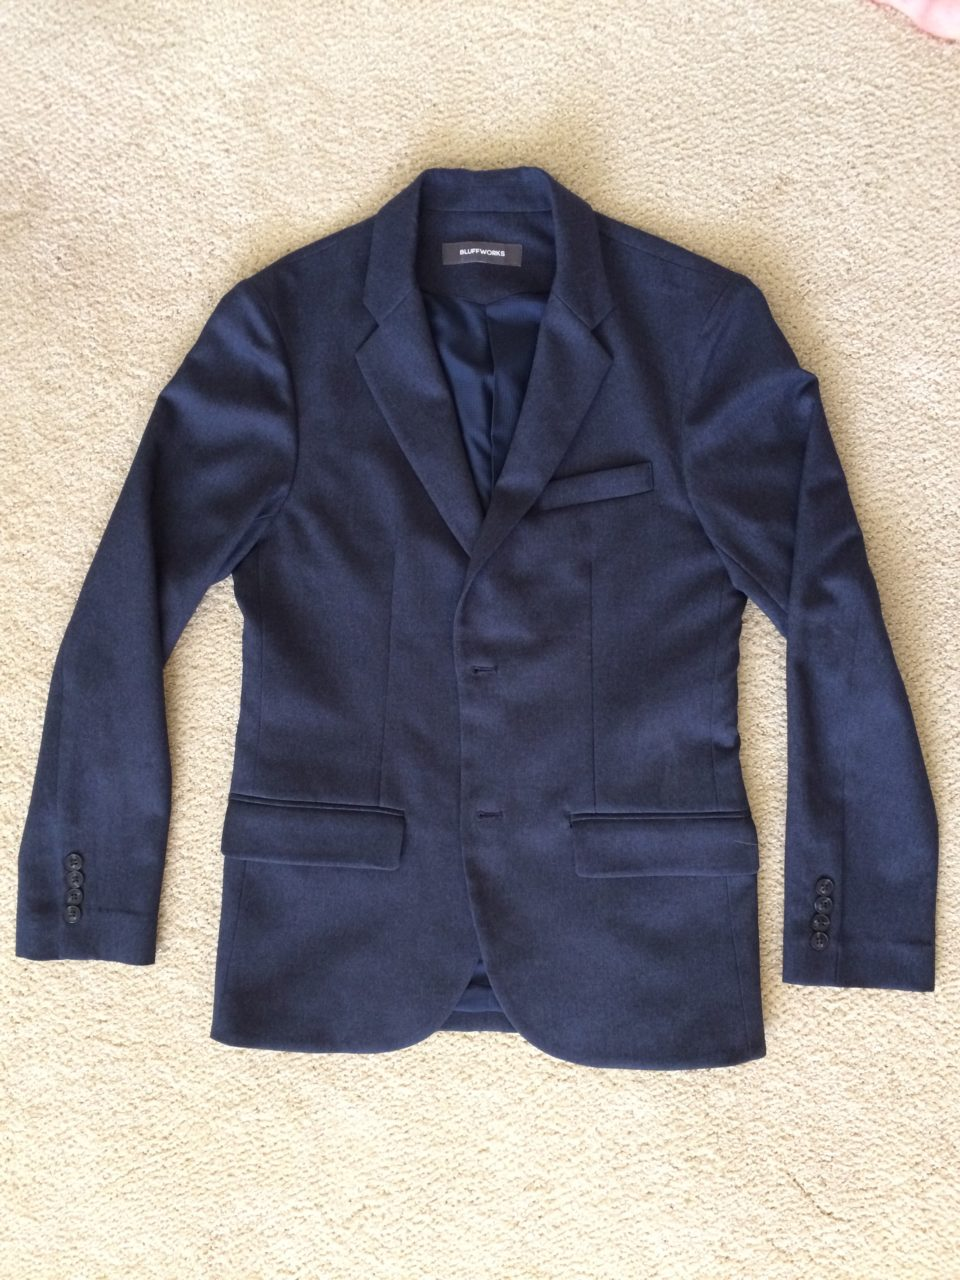 c1857a274f2 The Bluffworks Gramercy Blazer is finally here – Snarky Nomad